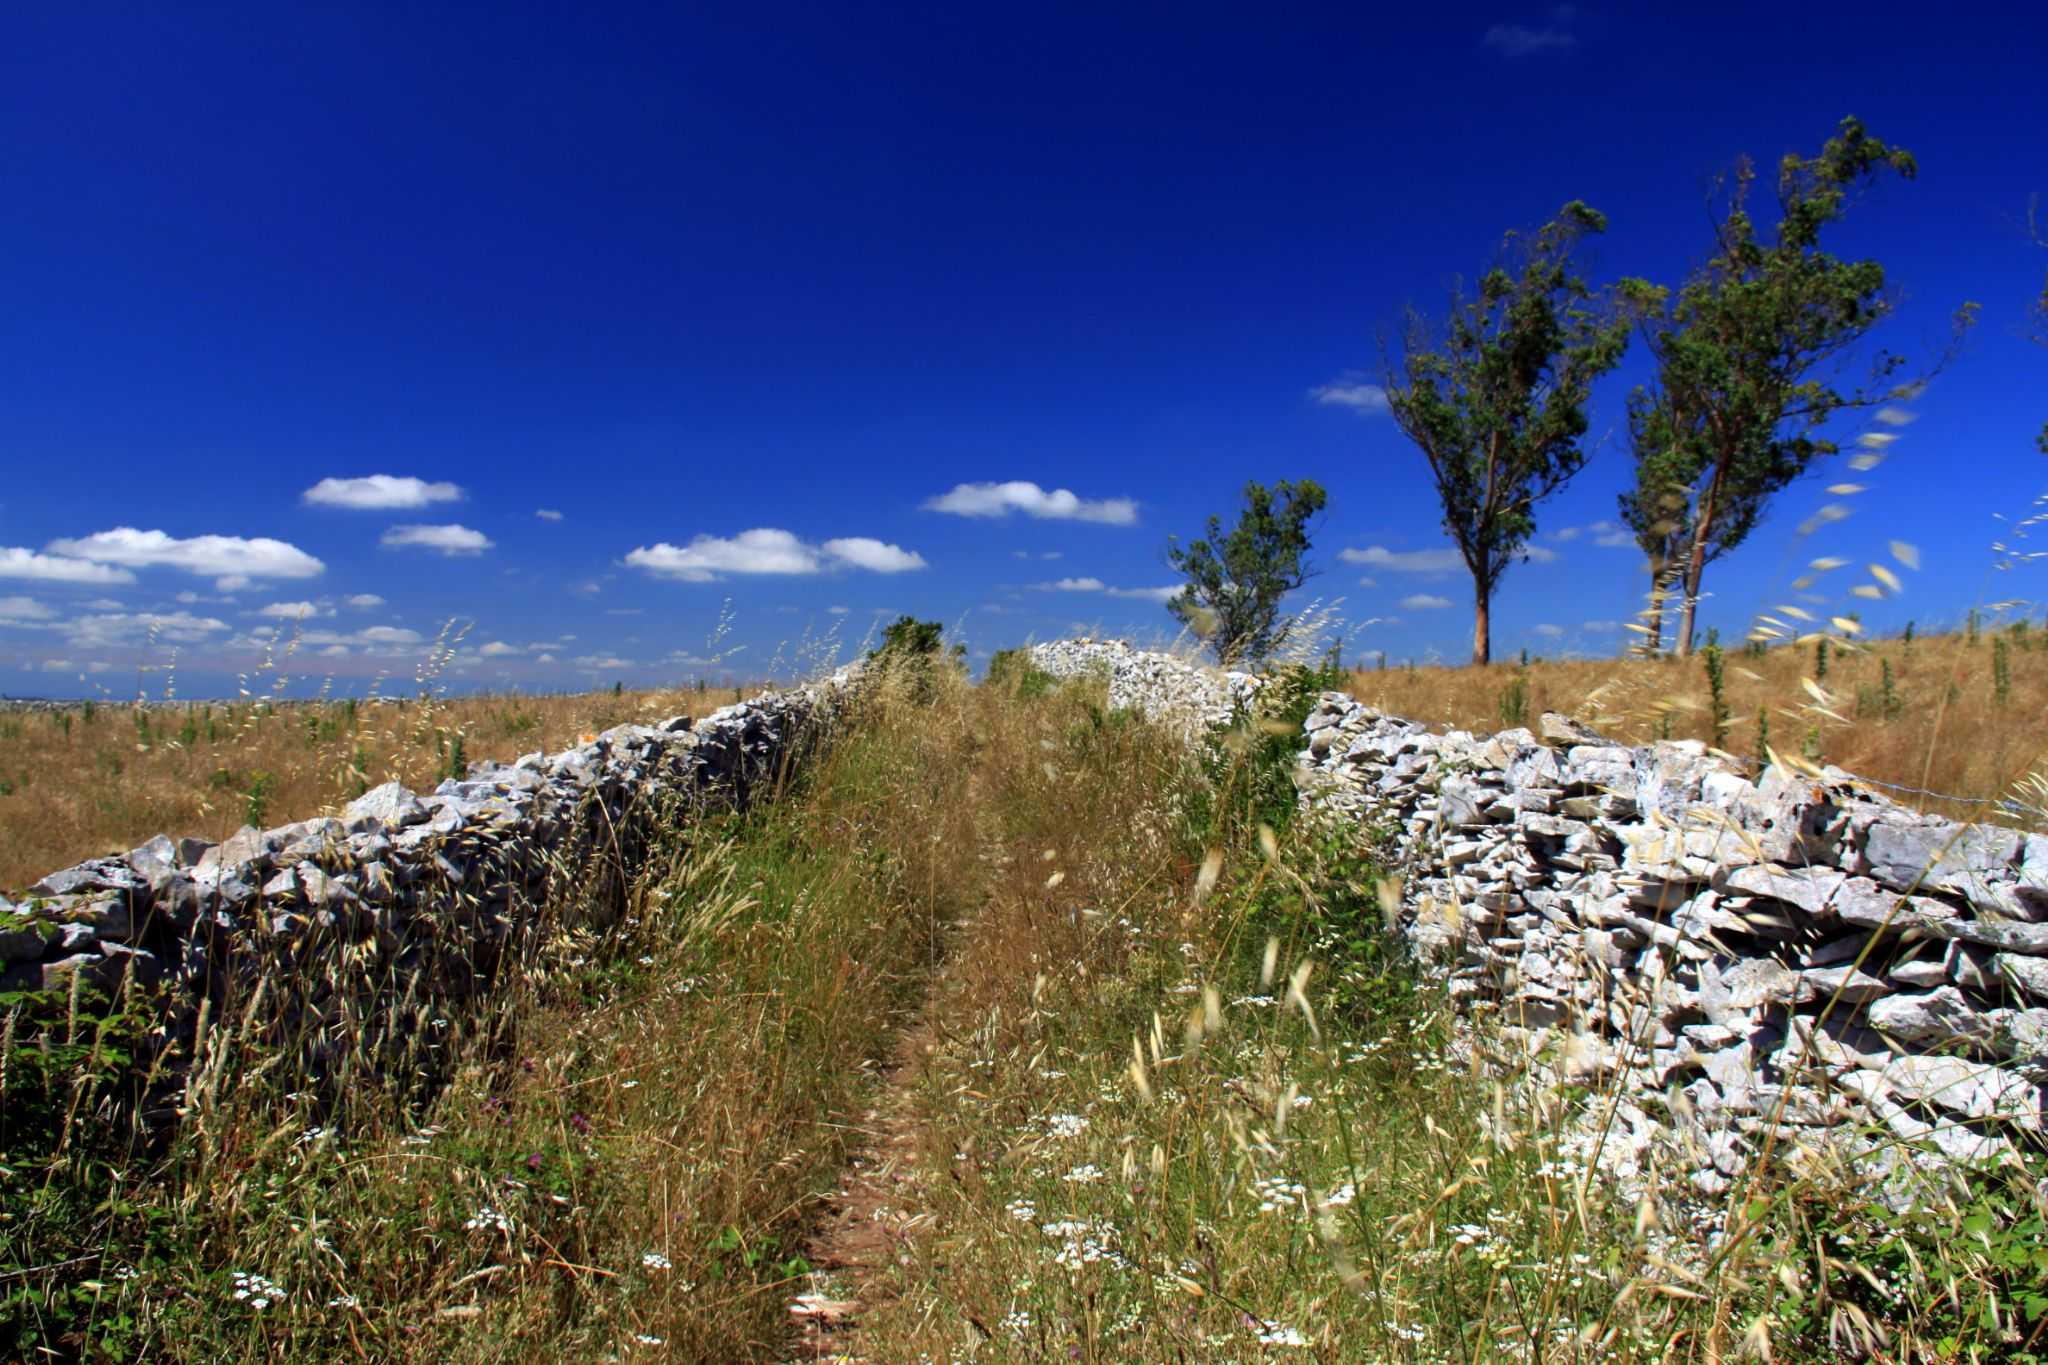 Path between stones by GilReis